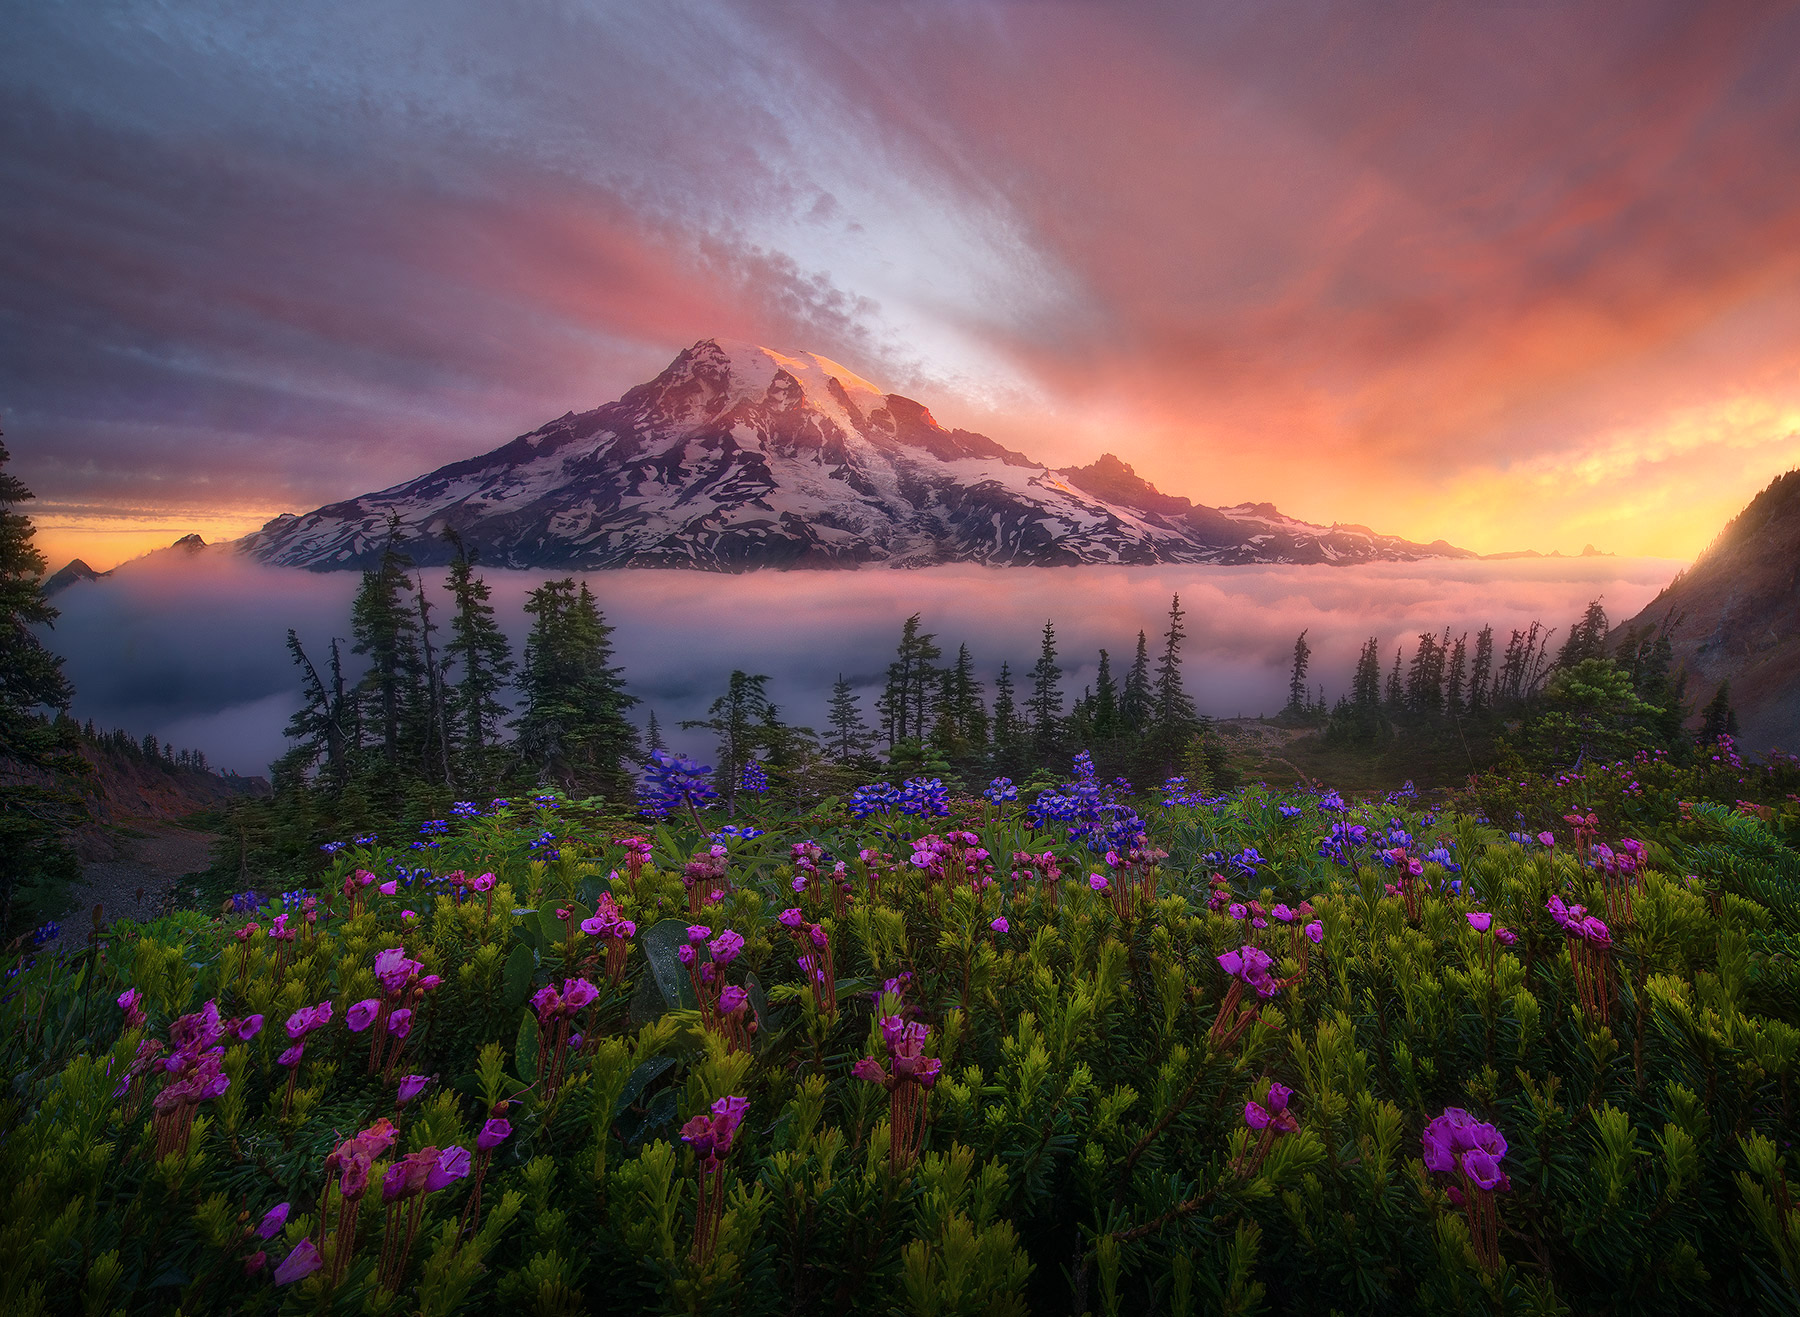 Rainier, sunrise, above, tatoosh, flowers, summer, warm, washington, national park, photo